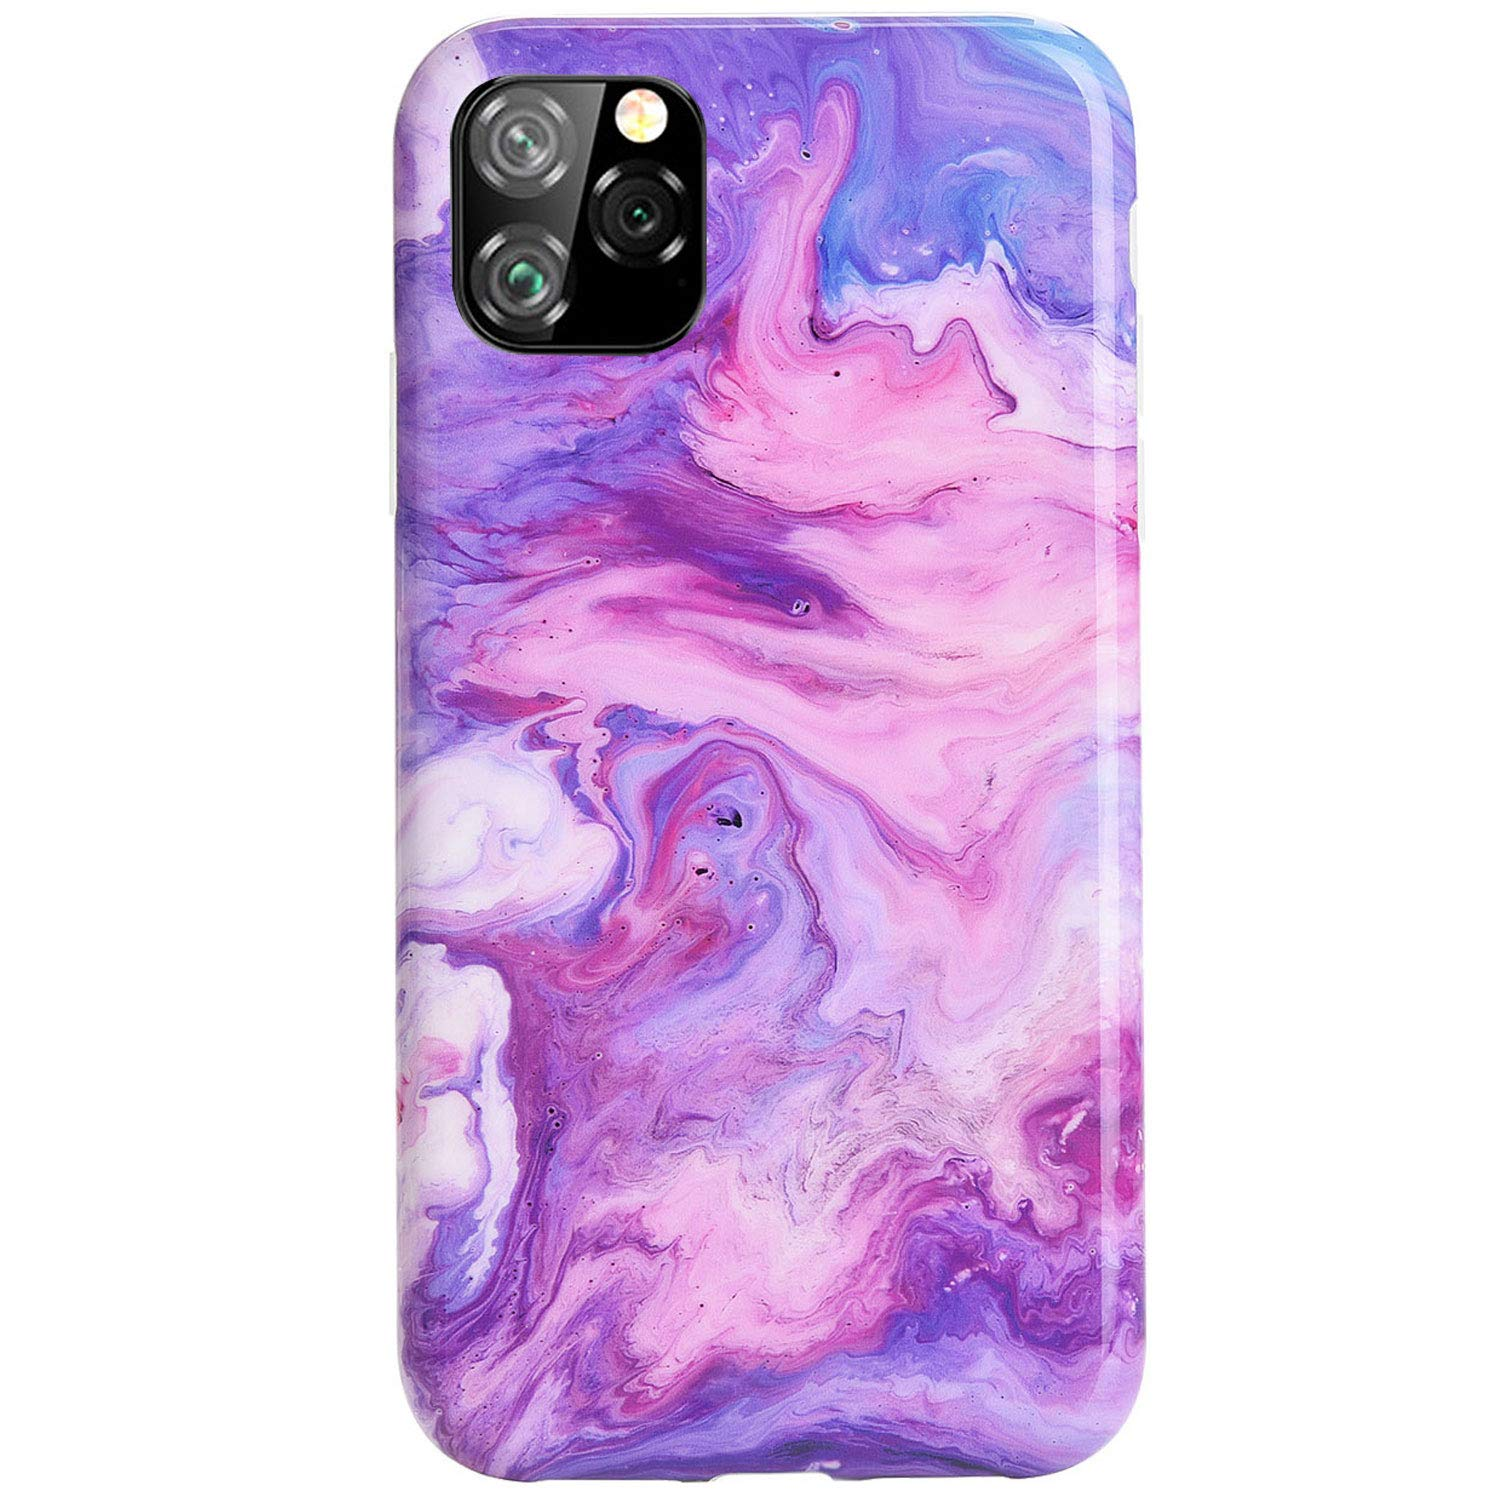 Reejax iPhone 11 Pro Max Case with Glass Screen Protector, Cute Magic Purple Marble for Girls Women Best Protective Slim Fit Clear Bumper Glossy TPU Soft Silicon Cover Phone Case for iPhone 11 Pro Max